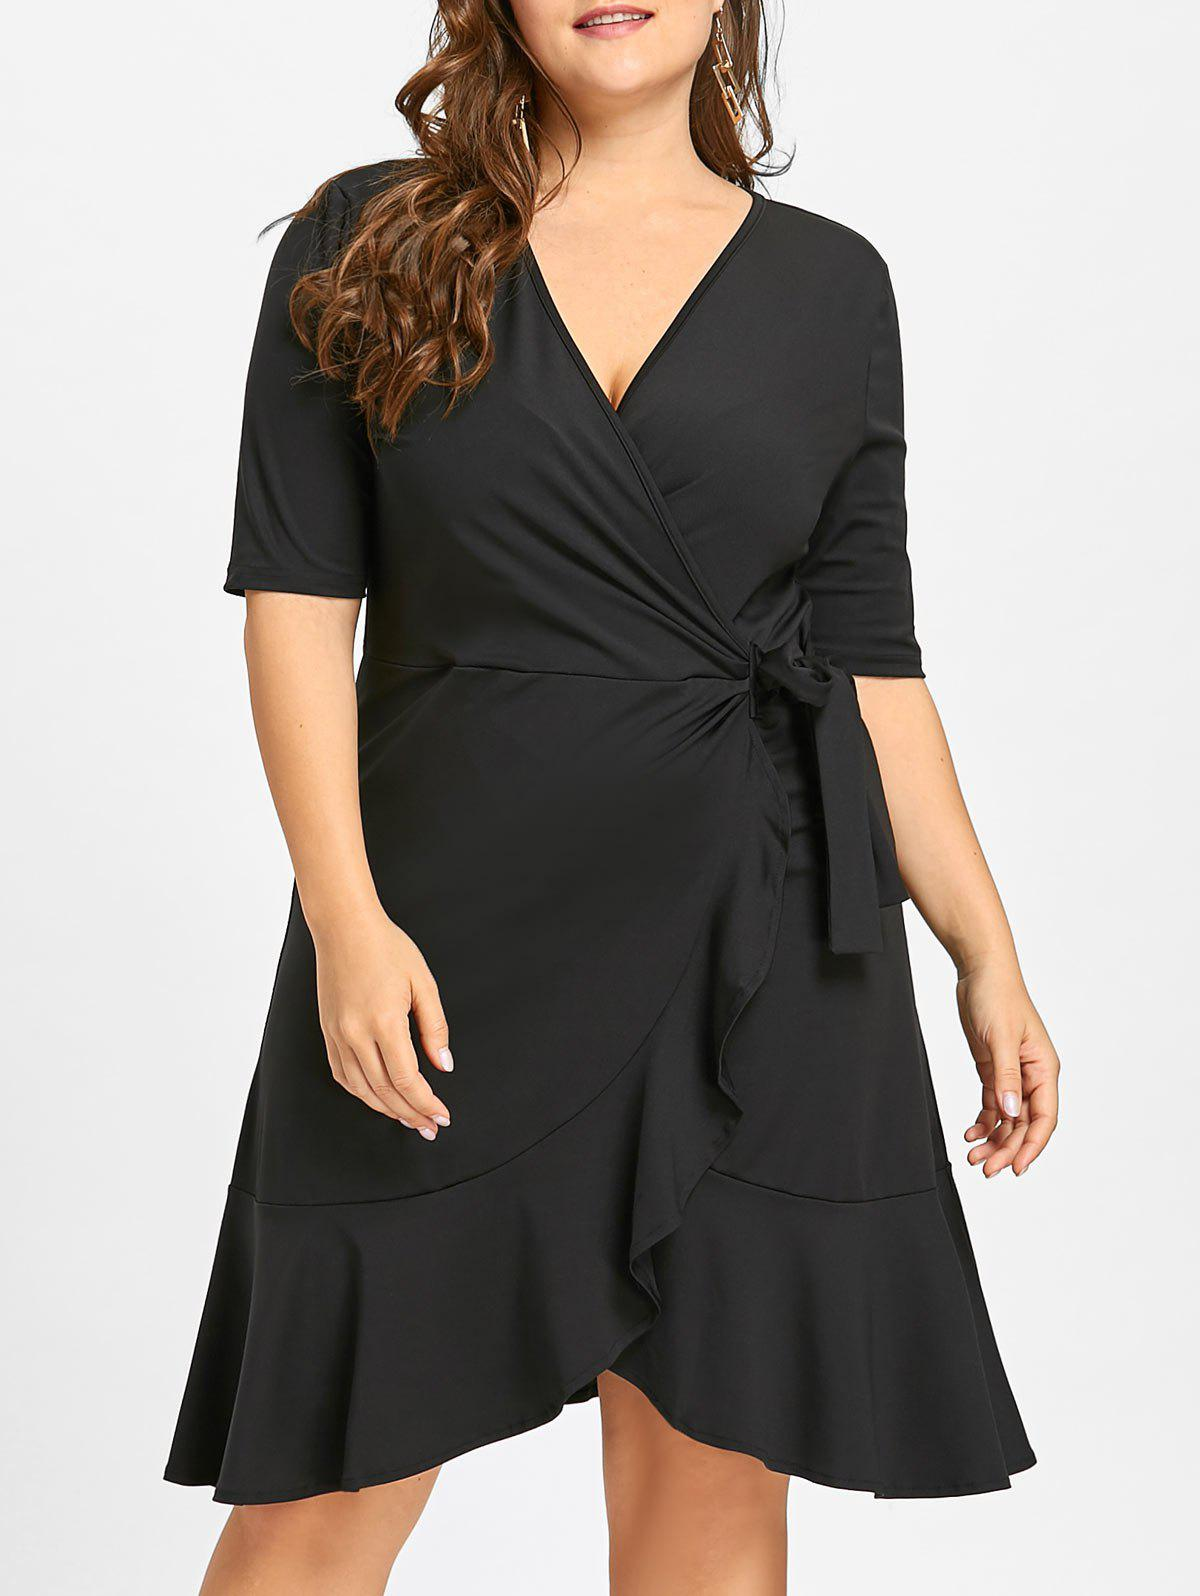 Self Fit Plus Size Flounce Jersey Surplice Dress - BLACK 7XL